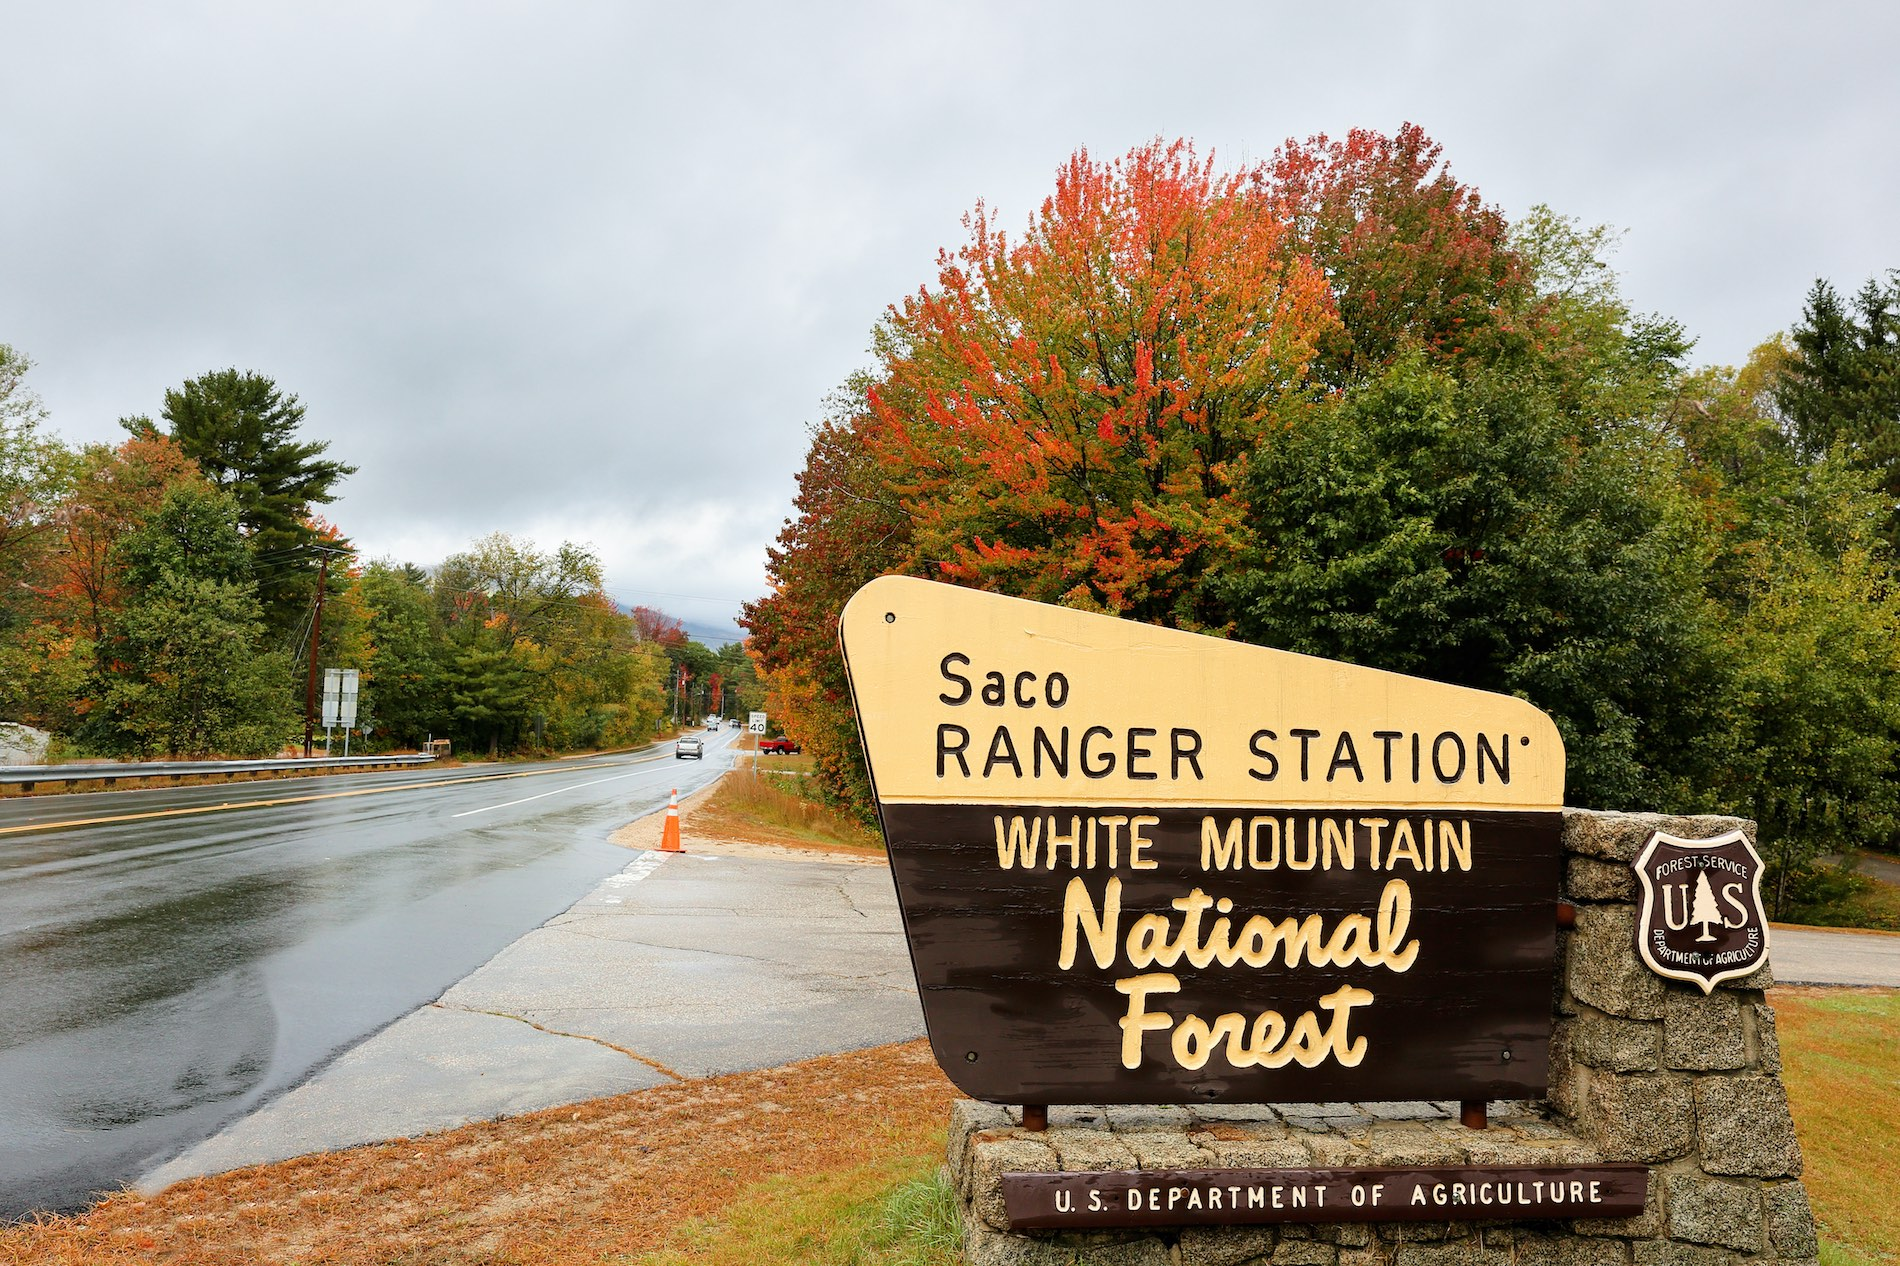 a ranger station along the Kancamagus Scenic Byway in New Hampshire